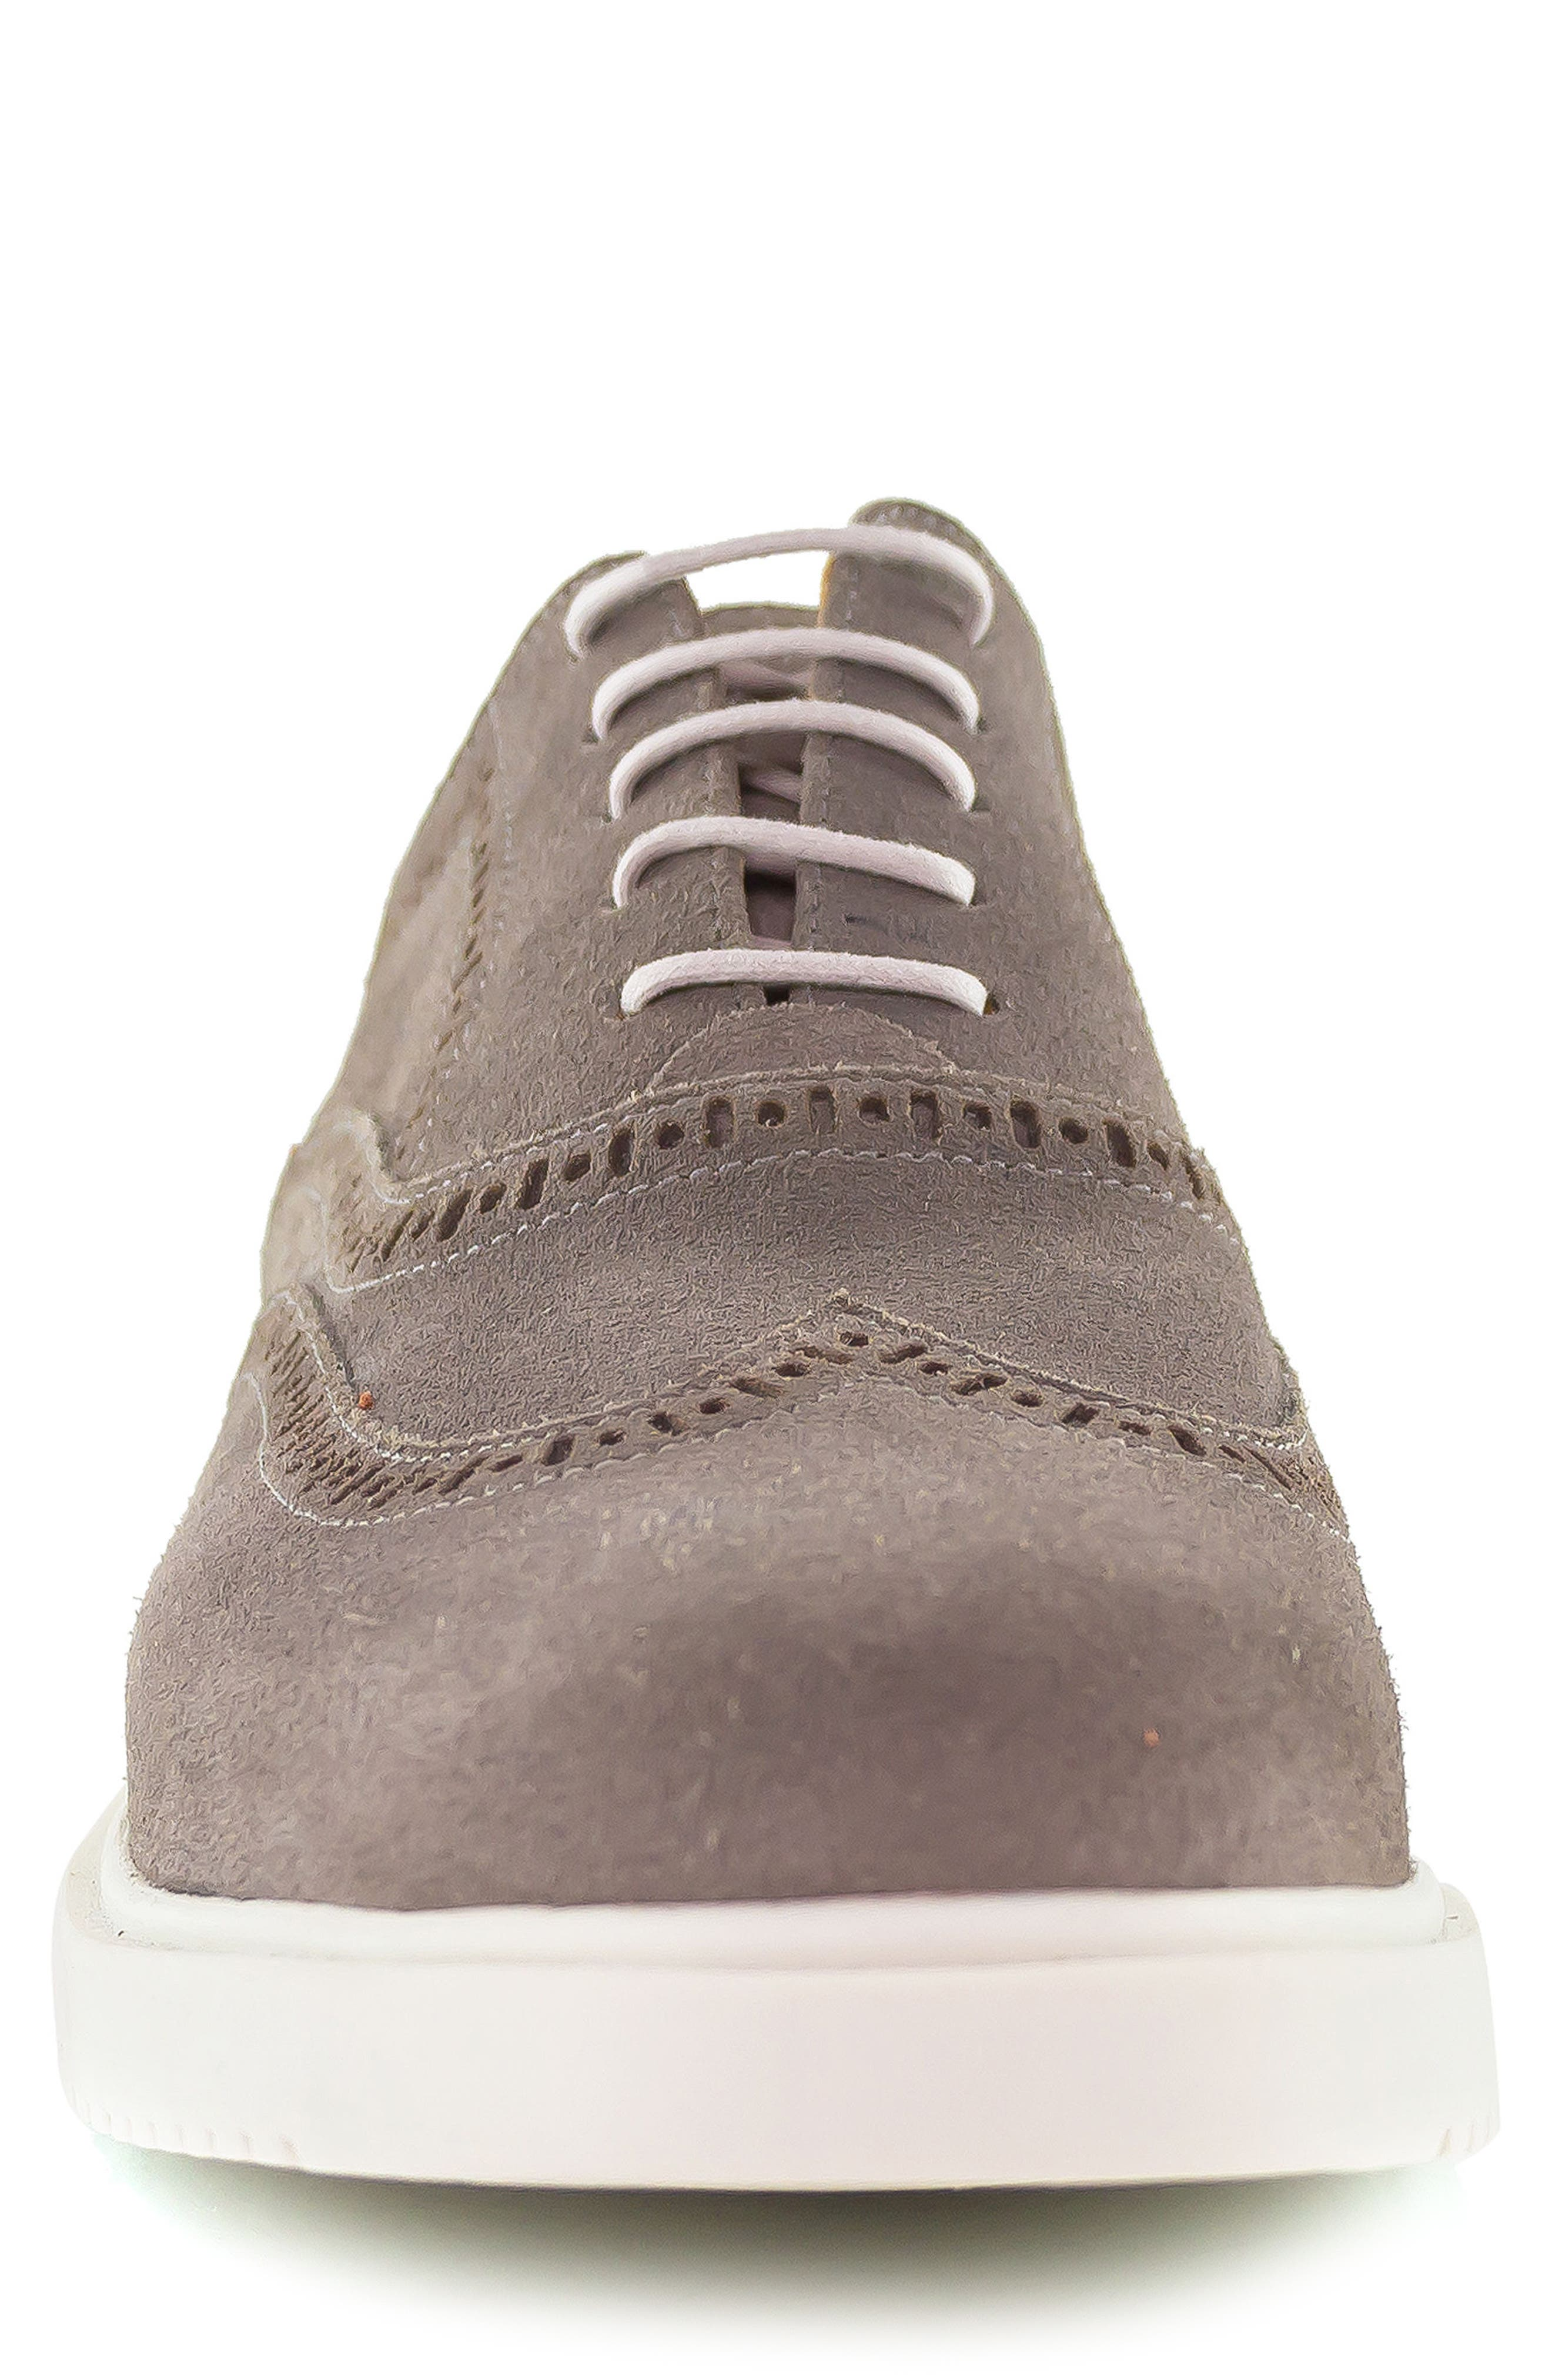 5th Ave Wingtip Sneaker,                             Alternate thumbnail 4, color,                             GREY SUEDE